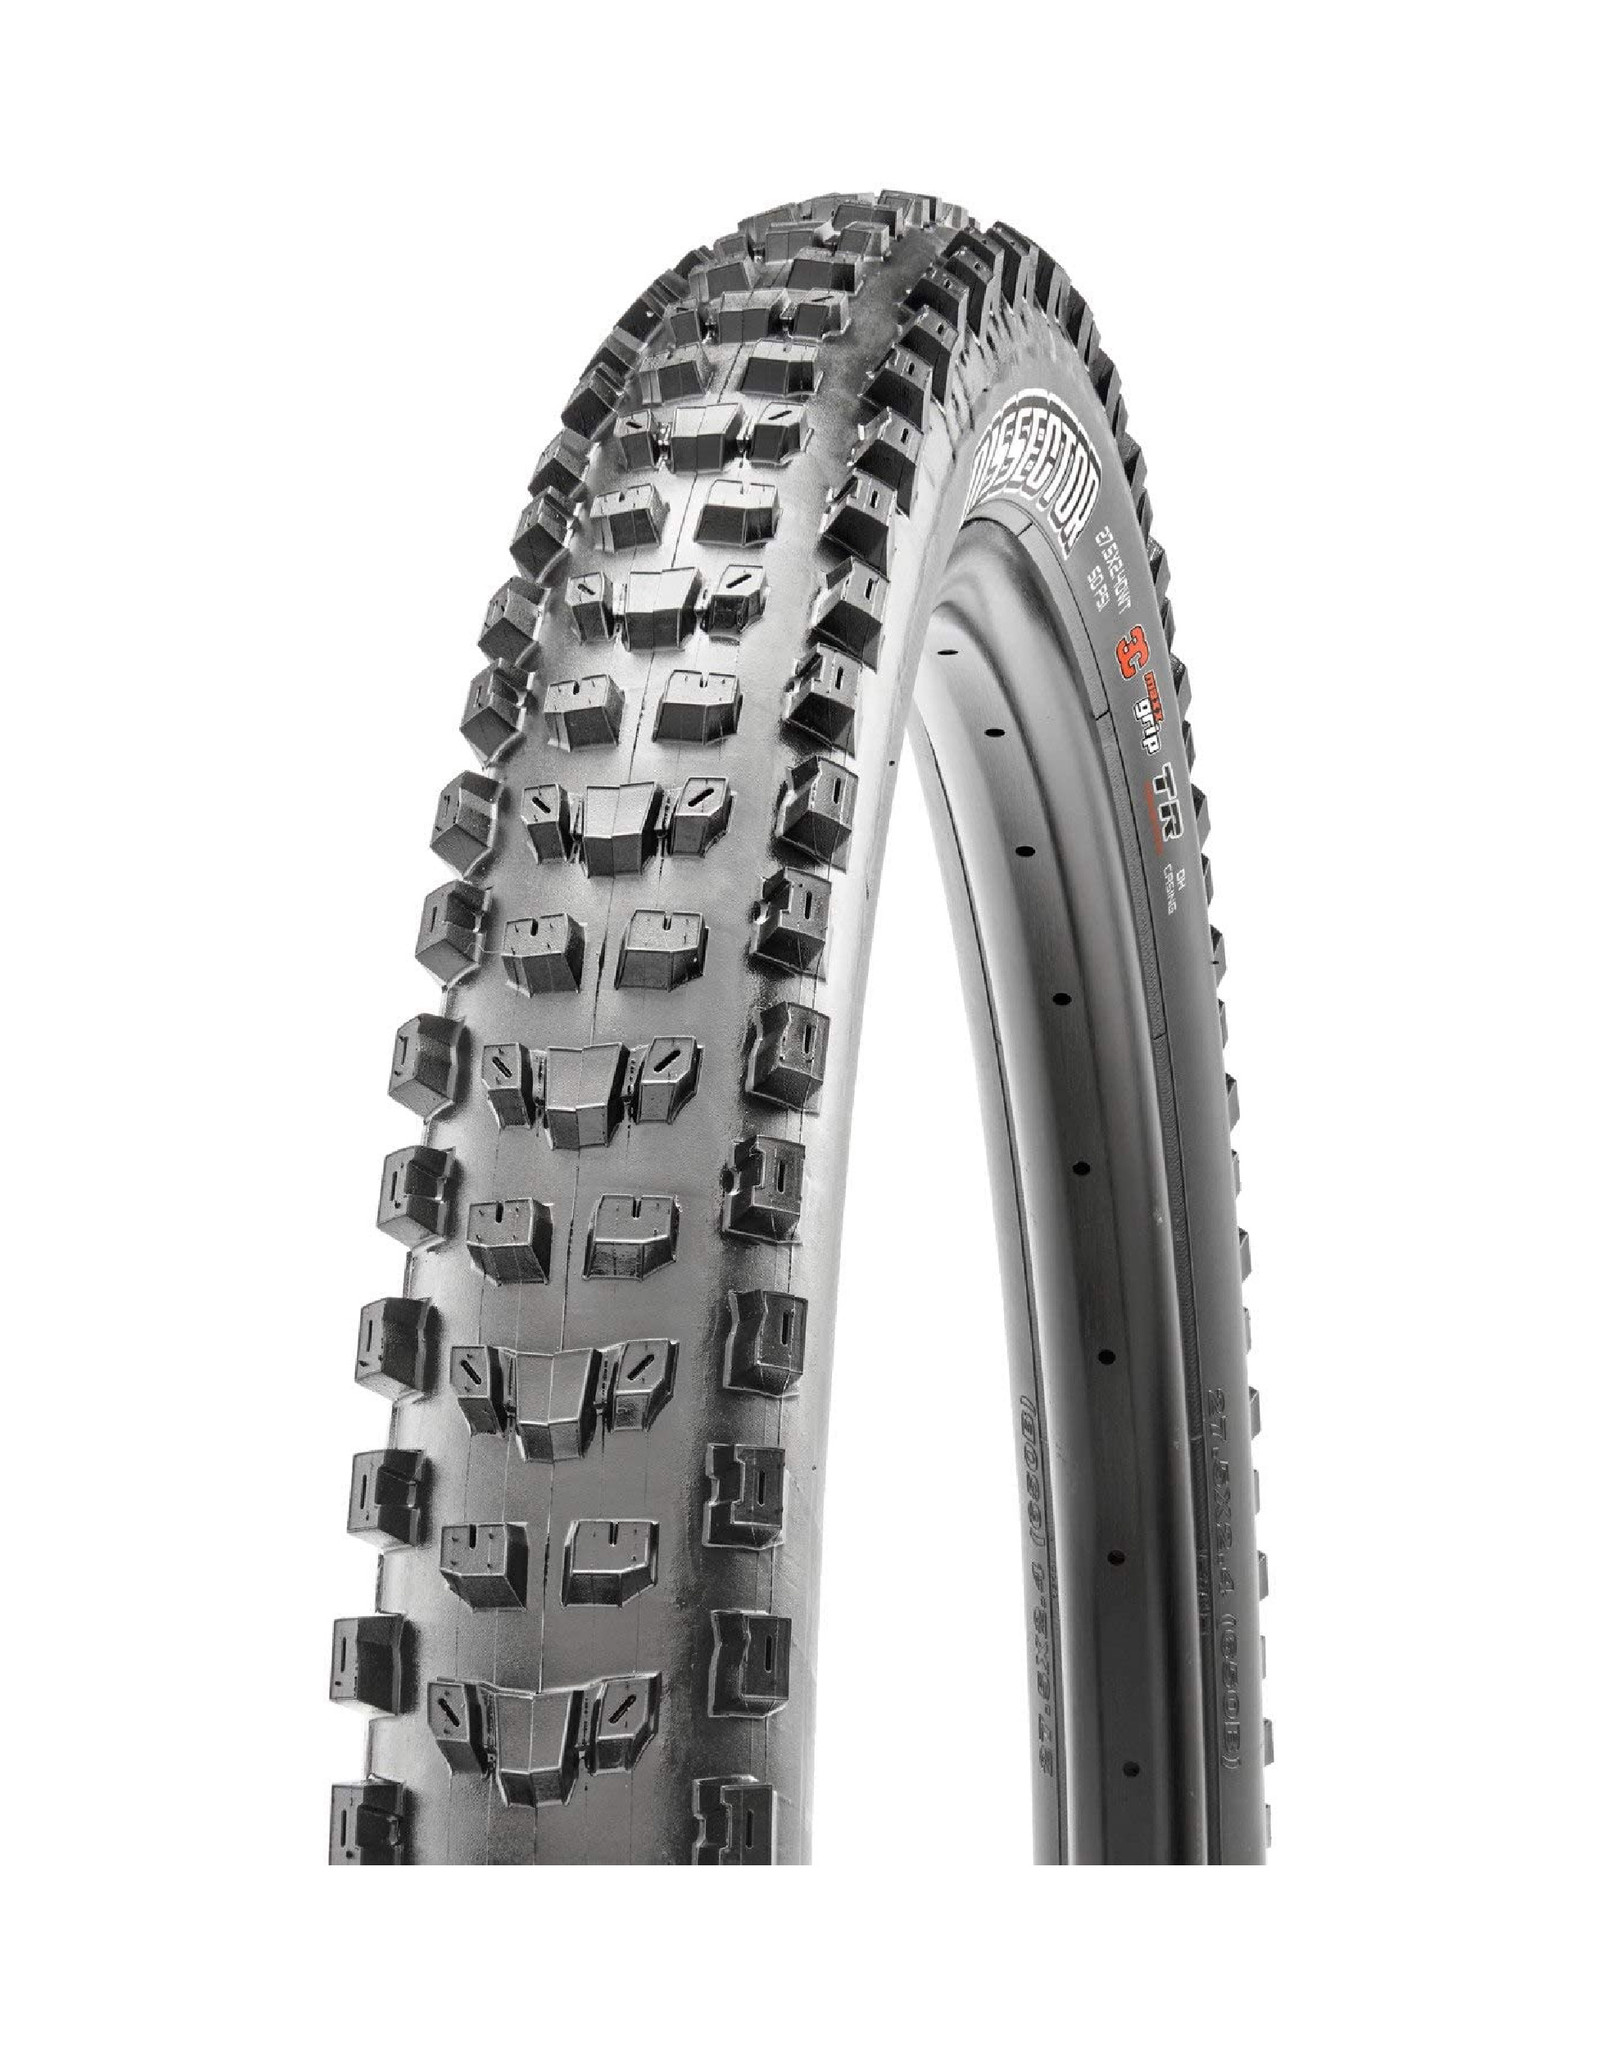 Maxxis Maxxis, Dissector, Tire, 29''x2.40, Folding, Tubeless Ready, 3C Maxx Grip, Double Down, Wide Trail, 120x2TPI, Black